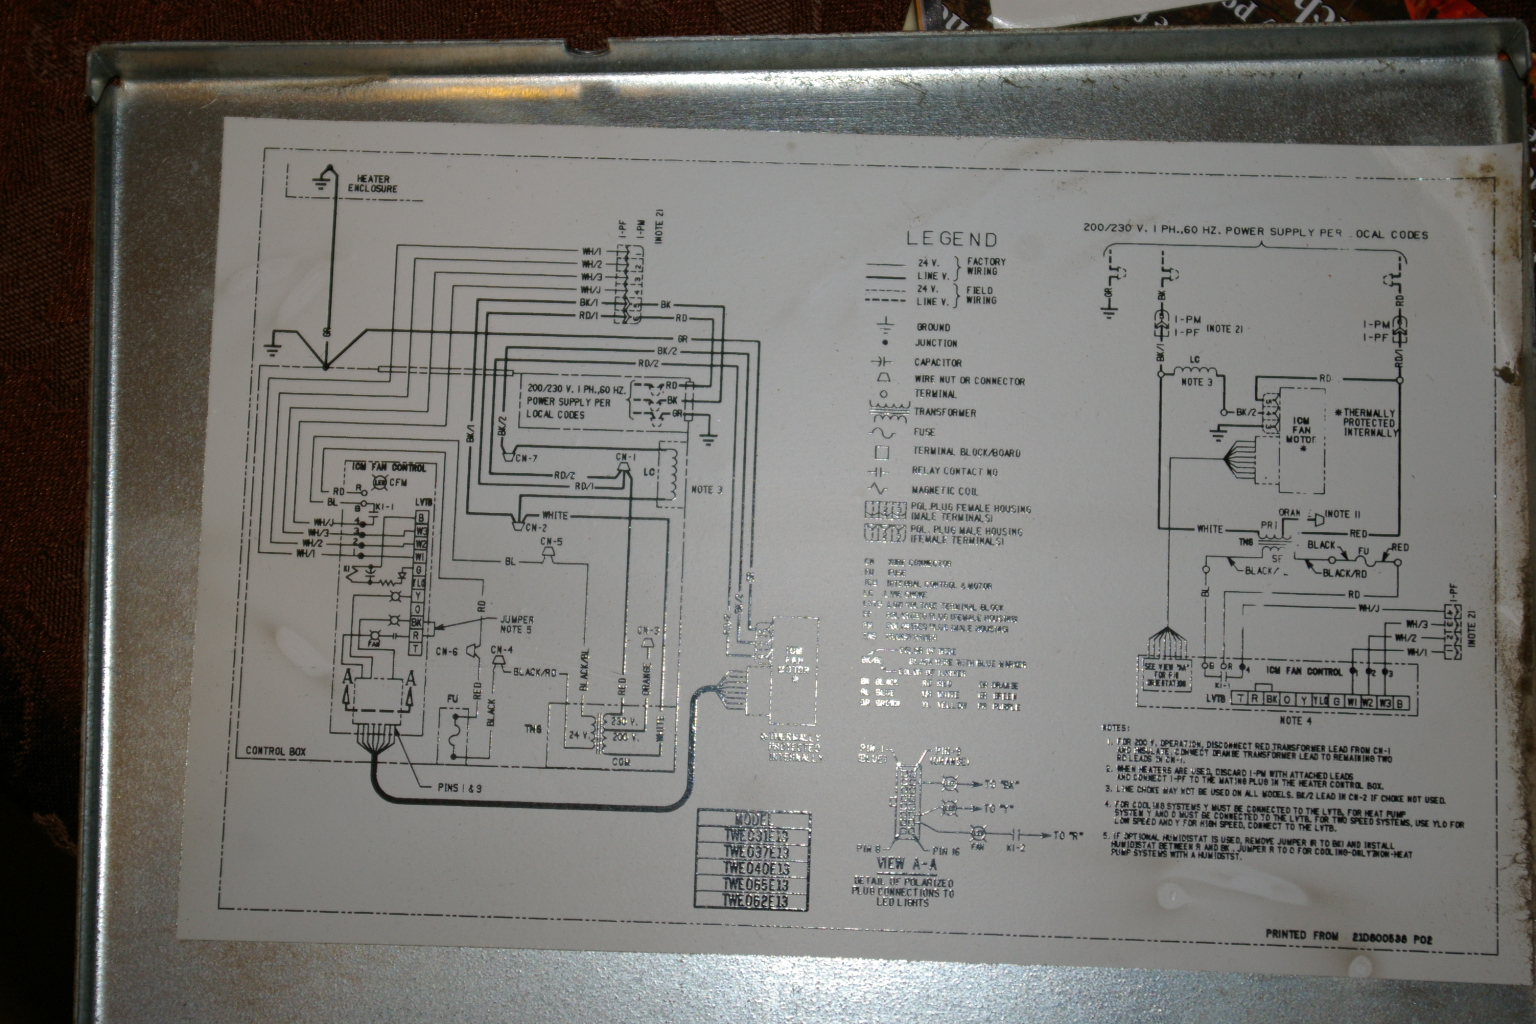 Lennox Air Handler Wiring Diagram Will Be A Thing Diagrams Trane Split System Get Free Image About Old Furnace Heat Pump